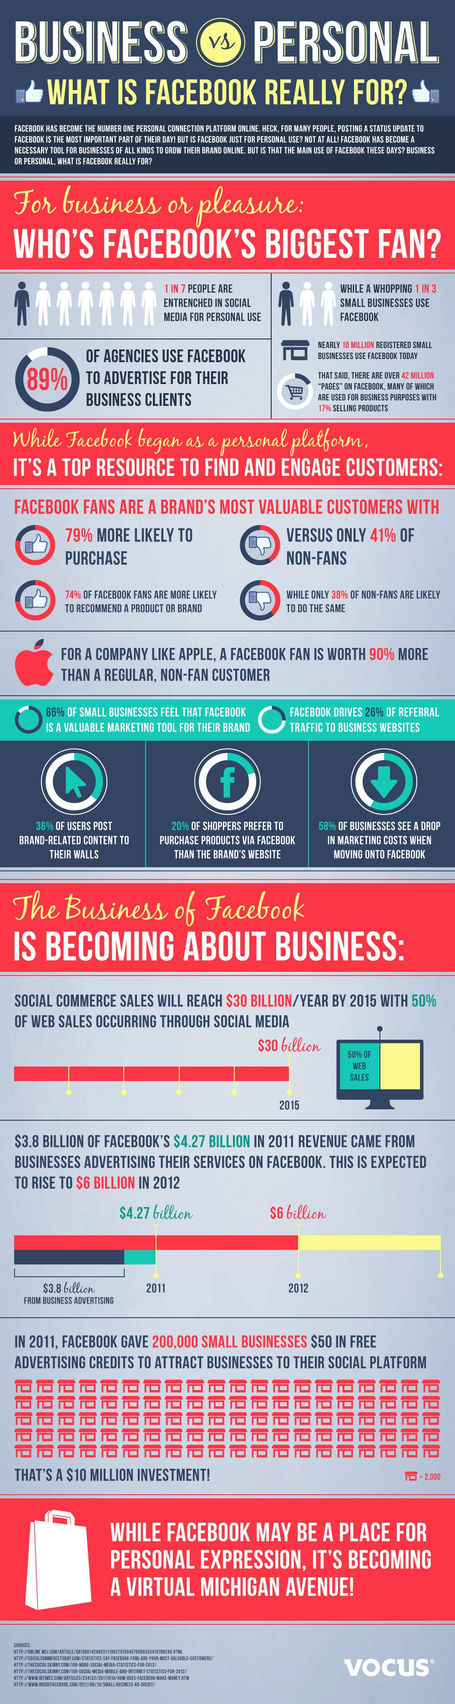 Why Sales on Social Media Will Be Huge By 2015 [INFOGRAPHIC] | SocialMediaDesign | Scoop.it